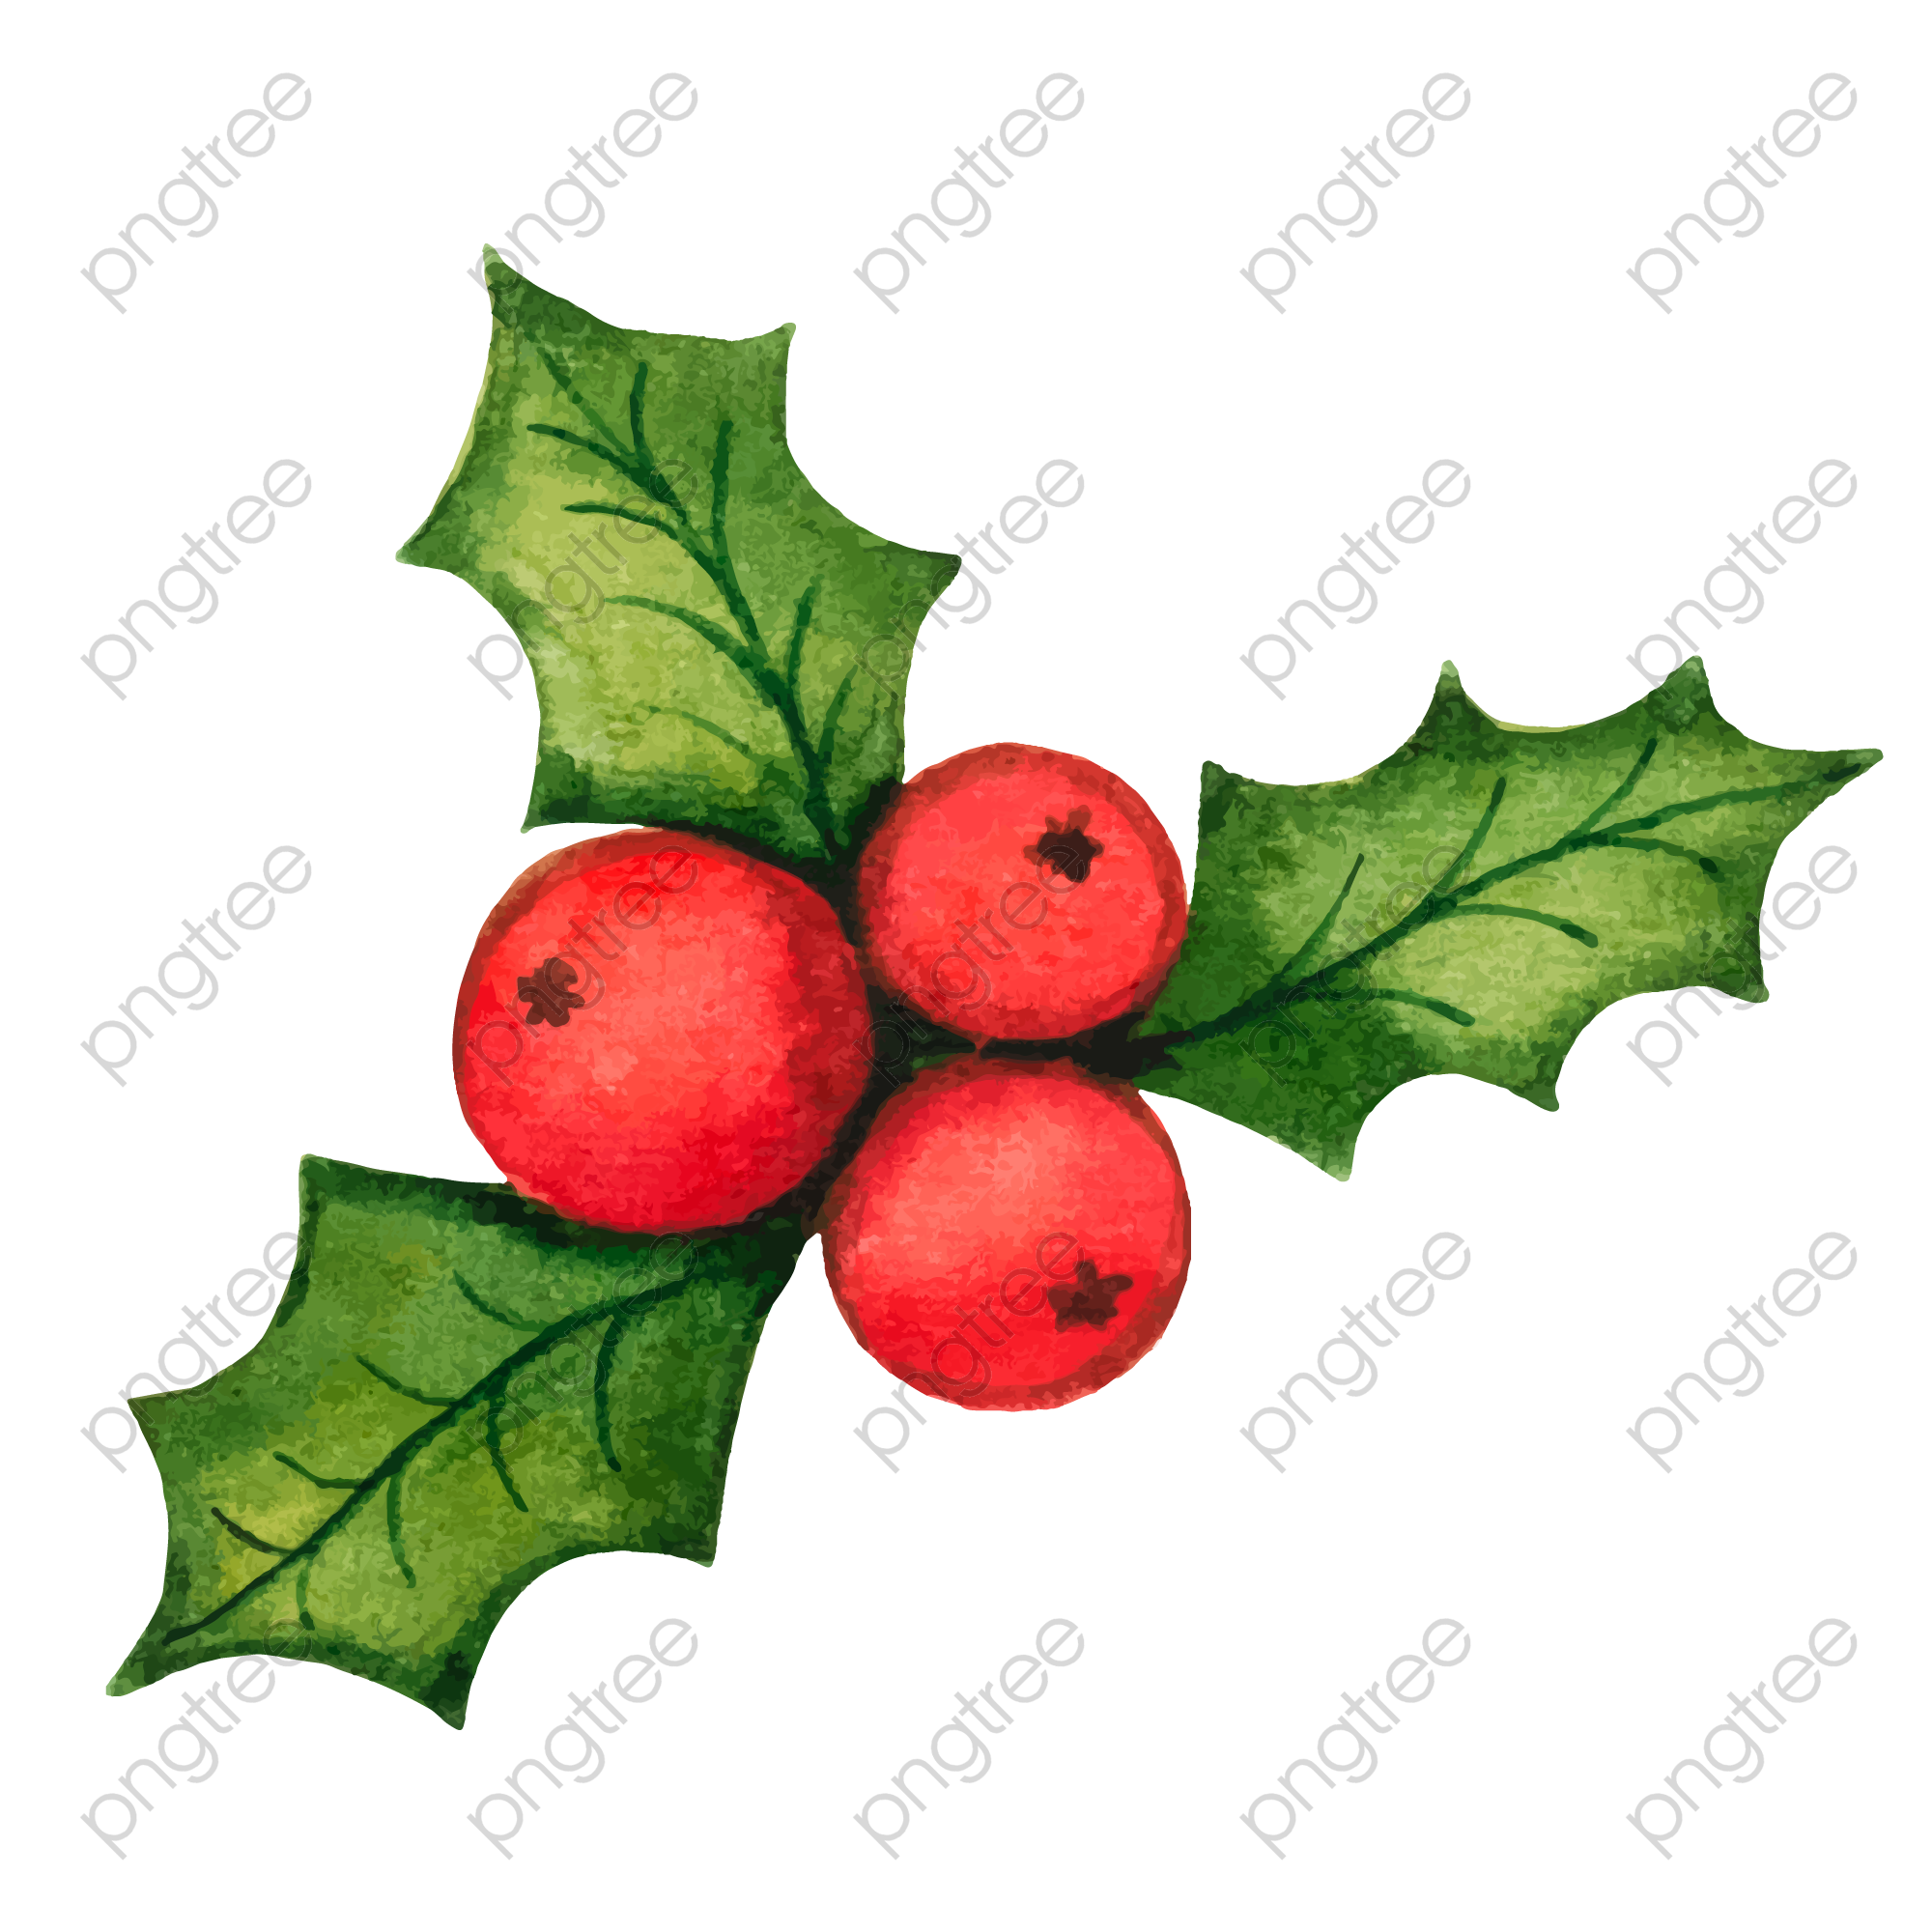 Christmas Holly Png.Transparent Christmas Holly Decorations Vector Material Png